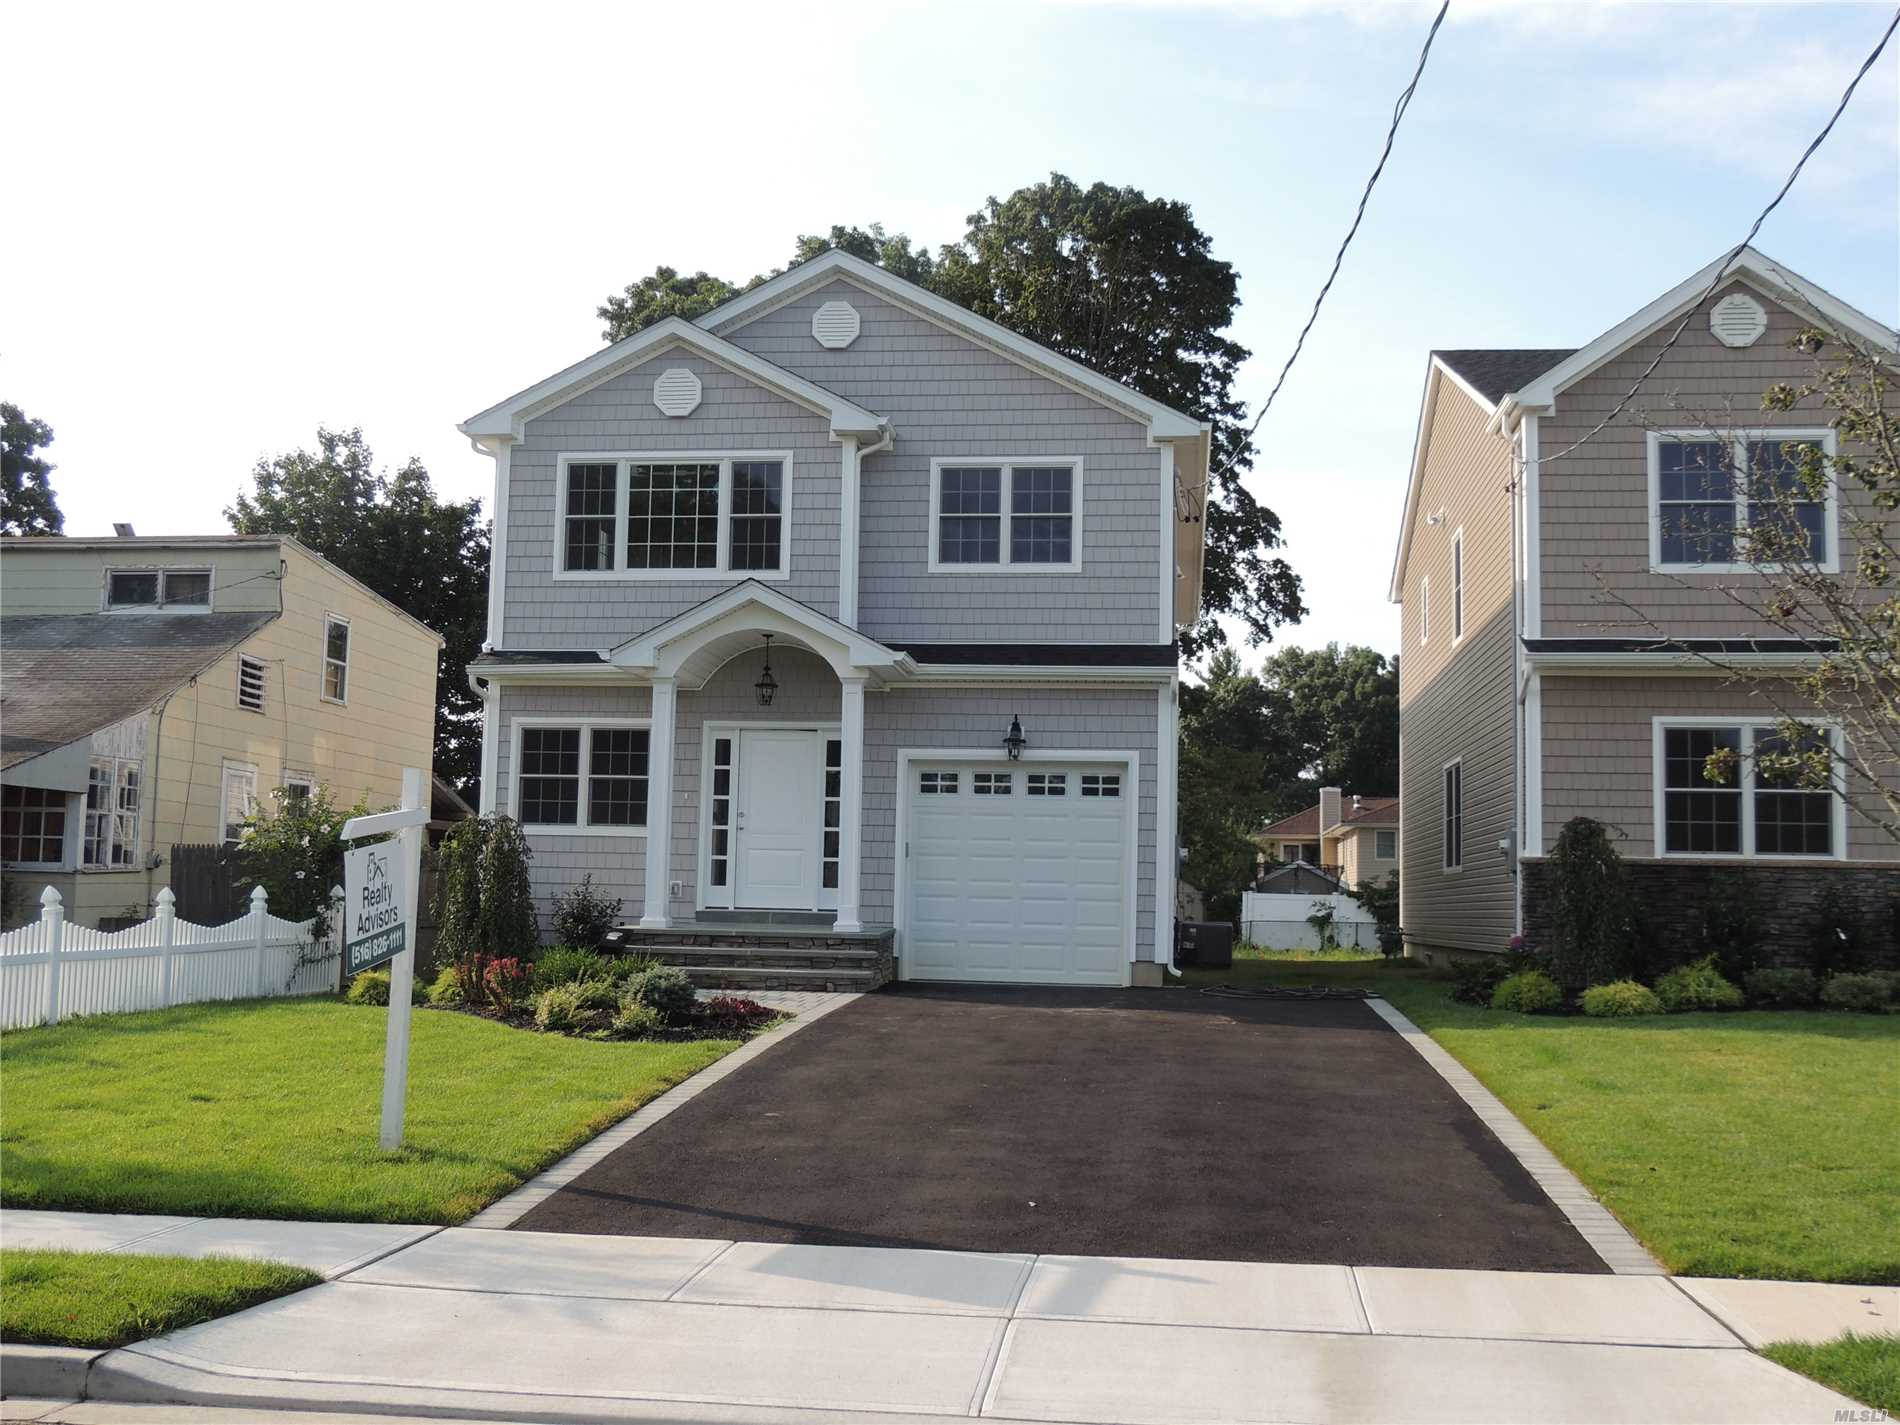 New Construction For Under $775, 000....I Know You Can't Believe It..Neither Could I...Diamond 4 Br..2.5 Bath Custom Built Colonial On Oversized Property...Still Time To Pick Your Granite And Paint Colors..Mstr Bedrm W/Bath & Wic..Gleaming Wood Floors..Granite Eat-In-Kitchen W/Island..Family Room W/Gas Fireplace..Enormous Basement..Extras Are Available....Huge 160 Feet Deep Yd..You Can Even Have The Pool You Have Been Dreaming Of..Taxes Will Be Determined After Final Co Is Issued